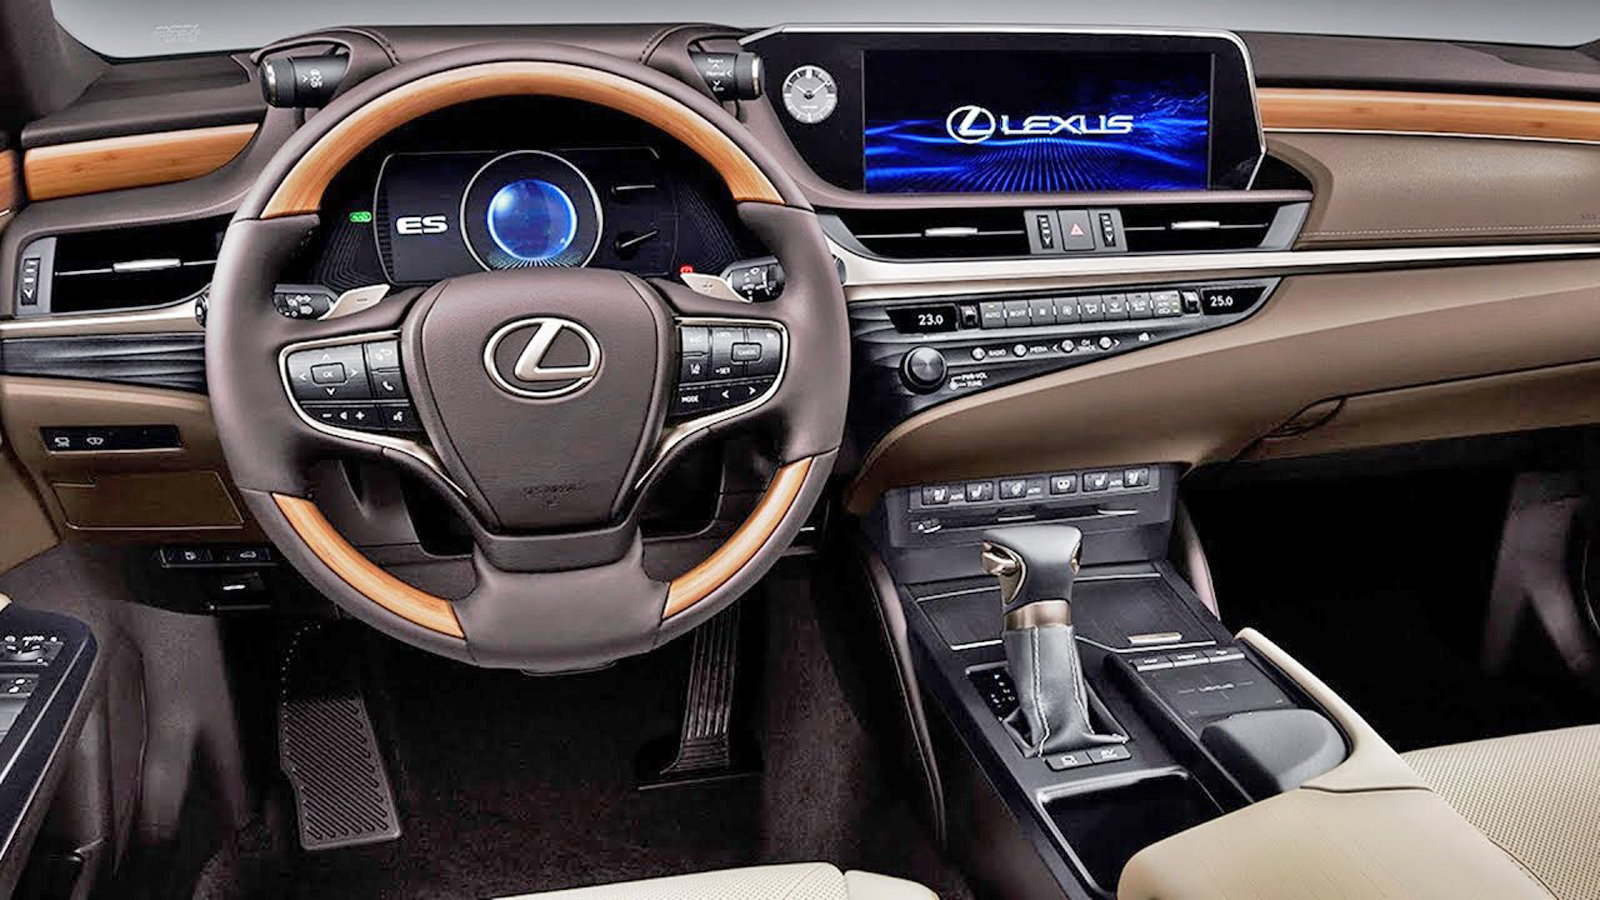 What to Expect from the 2019 Lexus ES